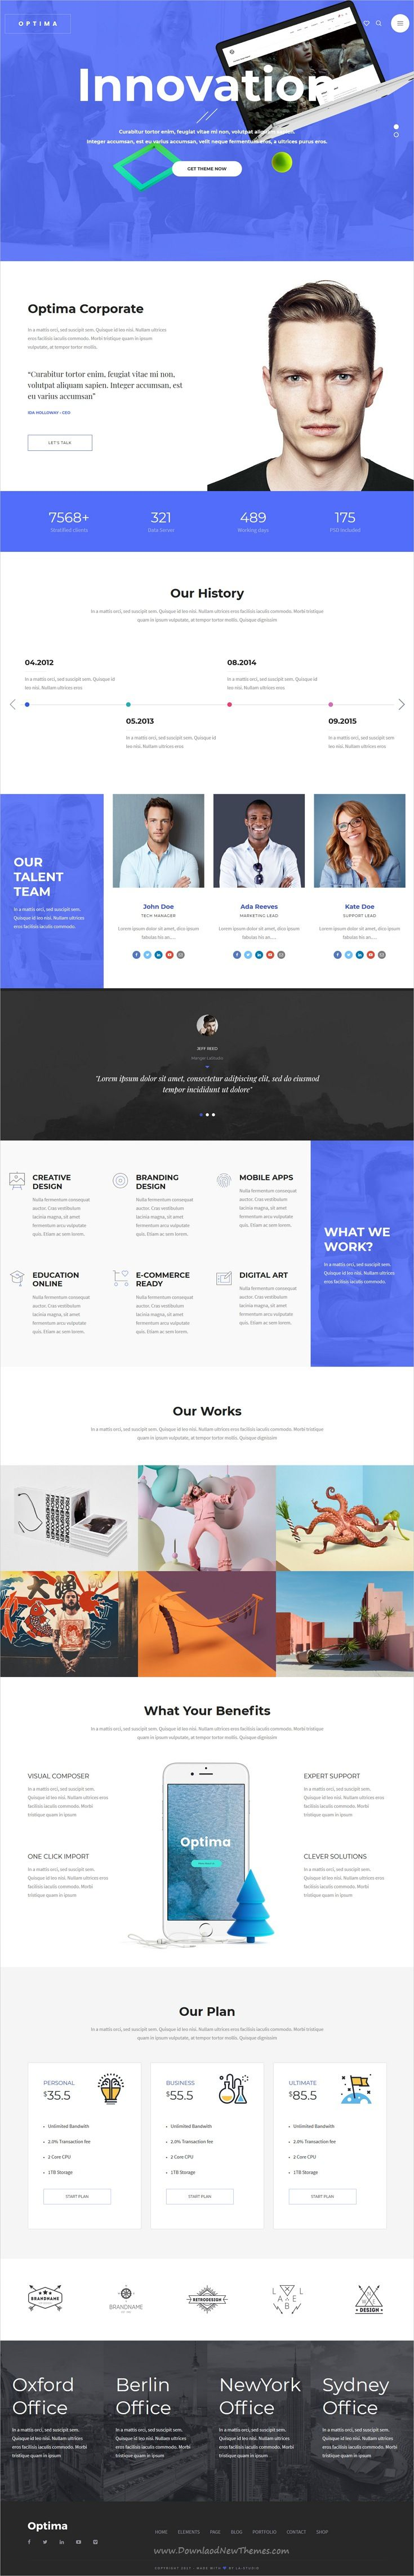 Optemia clean and modern design responsive multipurpose WordPress theme with 25+ homepage layouts Unlimited downloads of 340K inspiring and ready-to-use photos, Premium WordPress themes, Plugins, templates, fonts and assets; subscribe for a single monthly